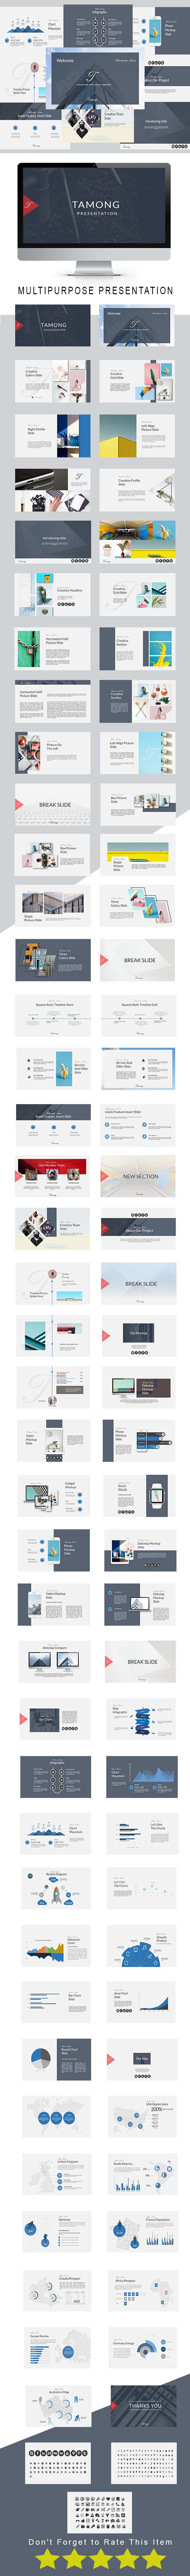 Tamong Multipurpose Powerpoint Template - PowerPoint Templates Presentation Templates